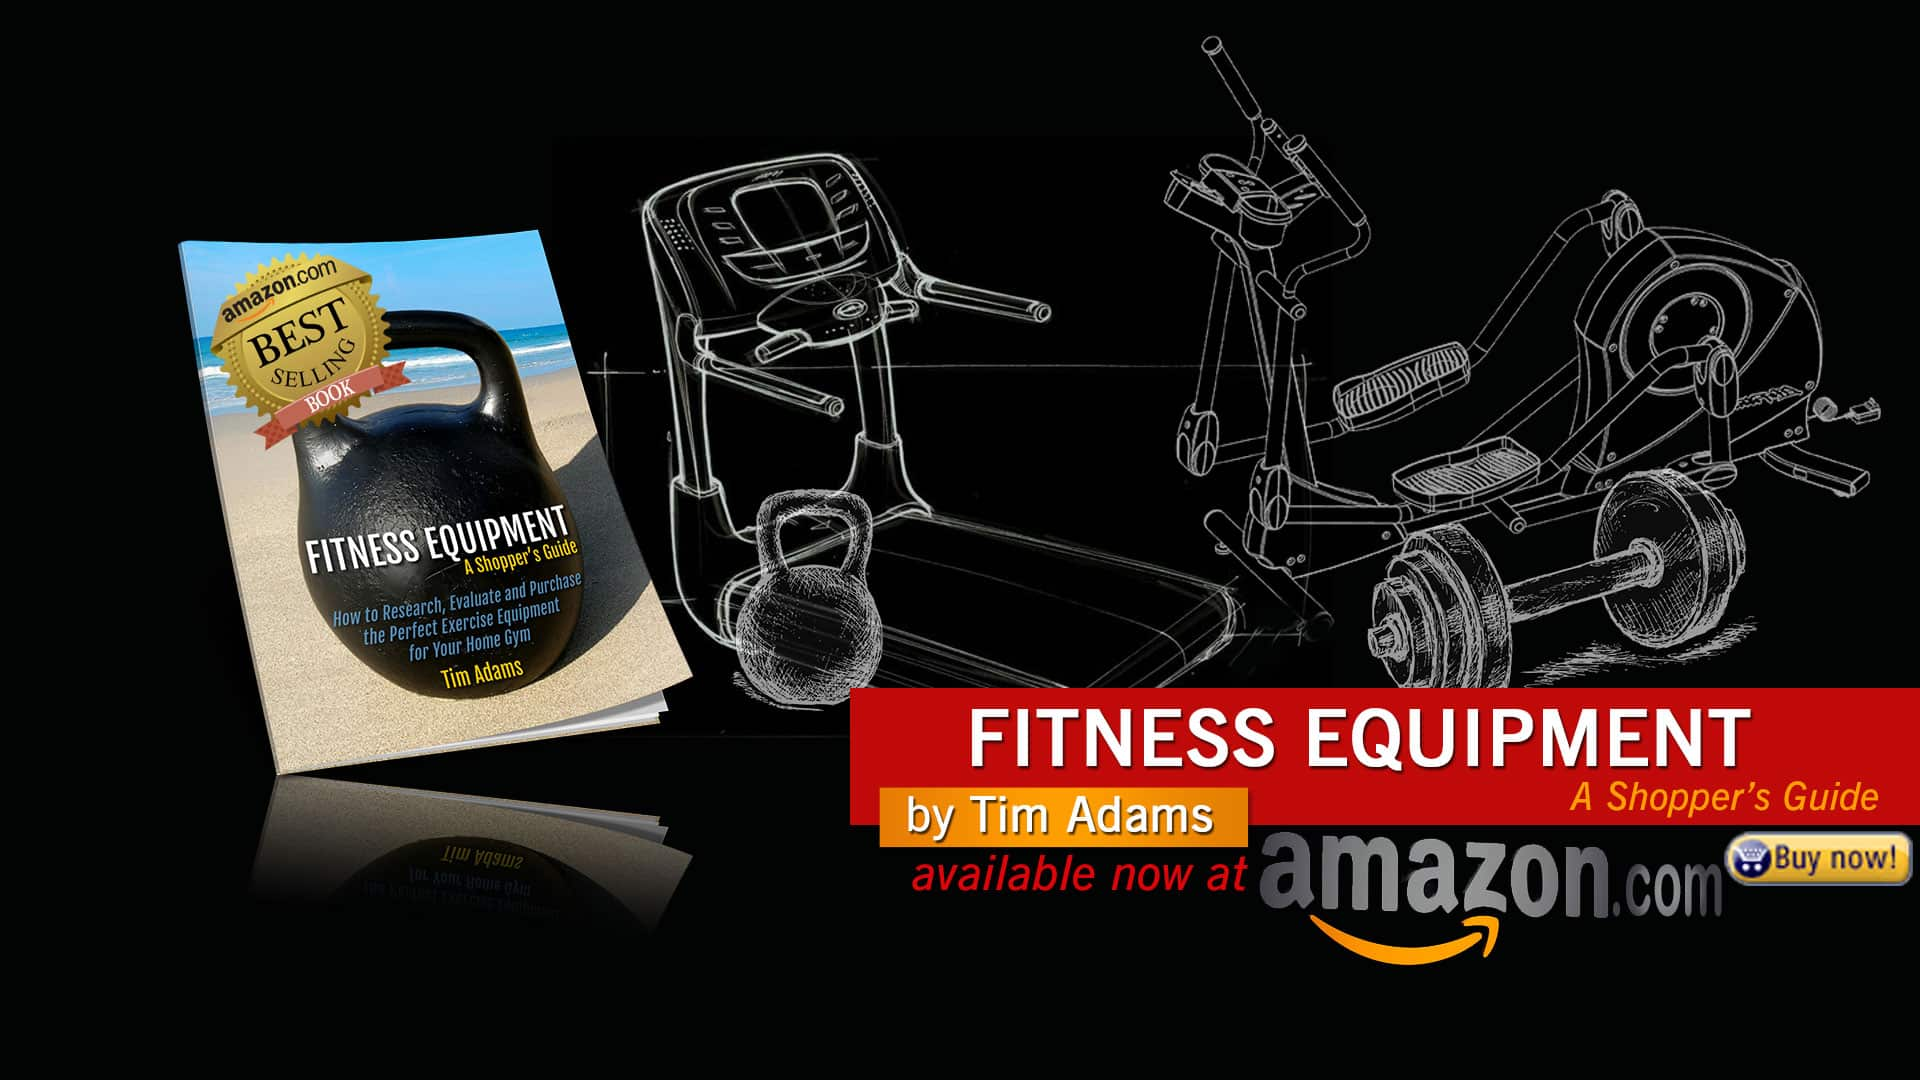 F Fitness Equipment – A Shopper's Guide